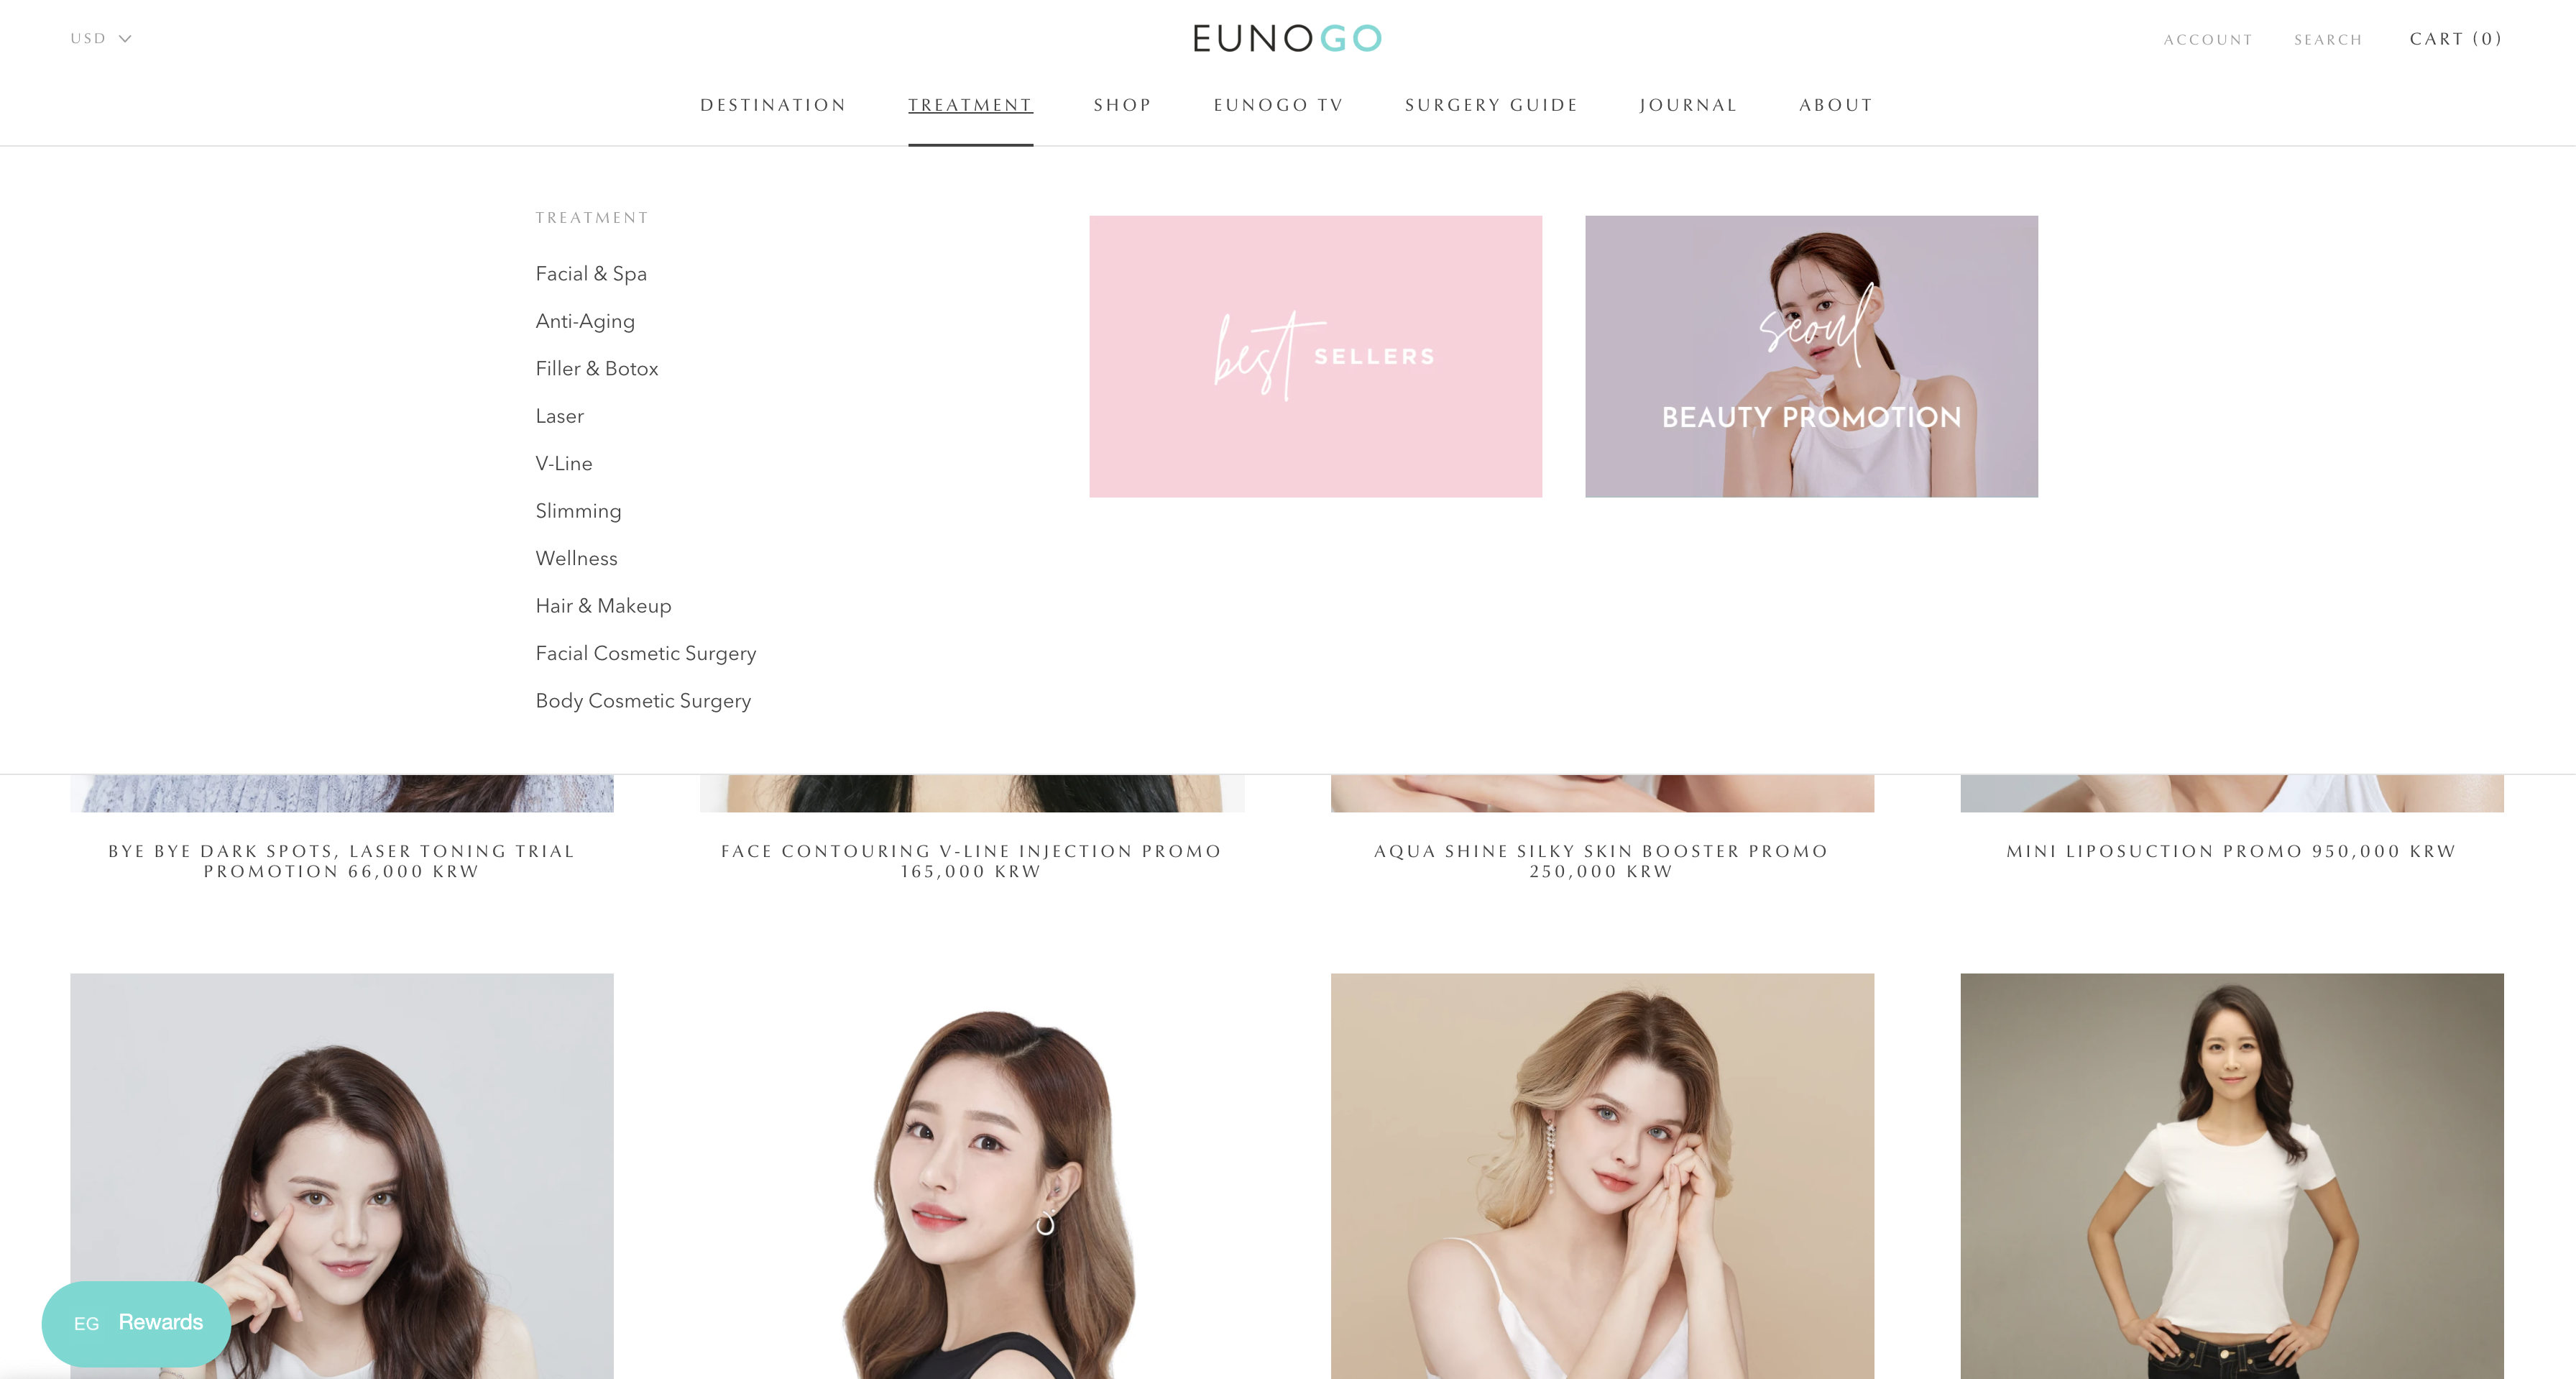 EUNOGO review | I Tried the #1 Beauty Treatment in Korea